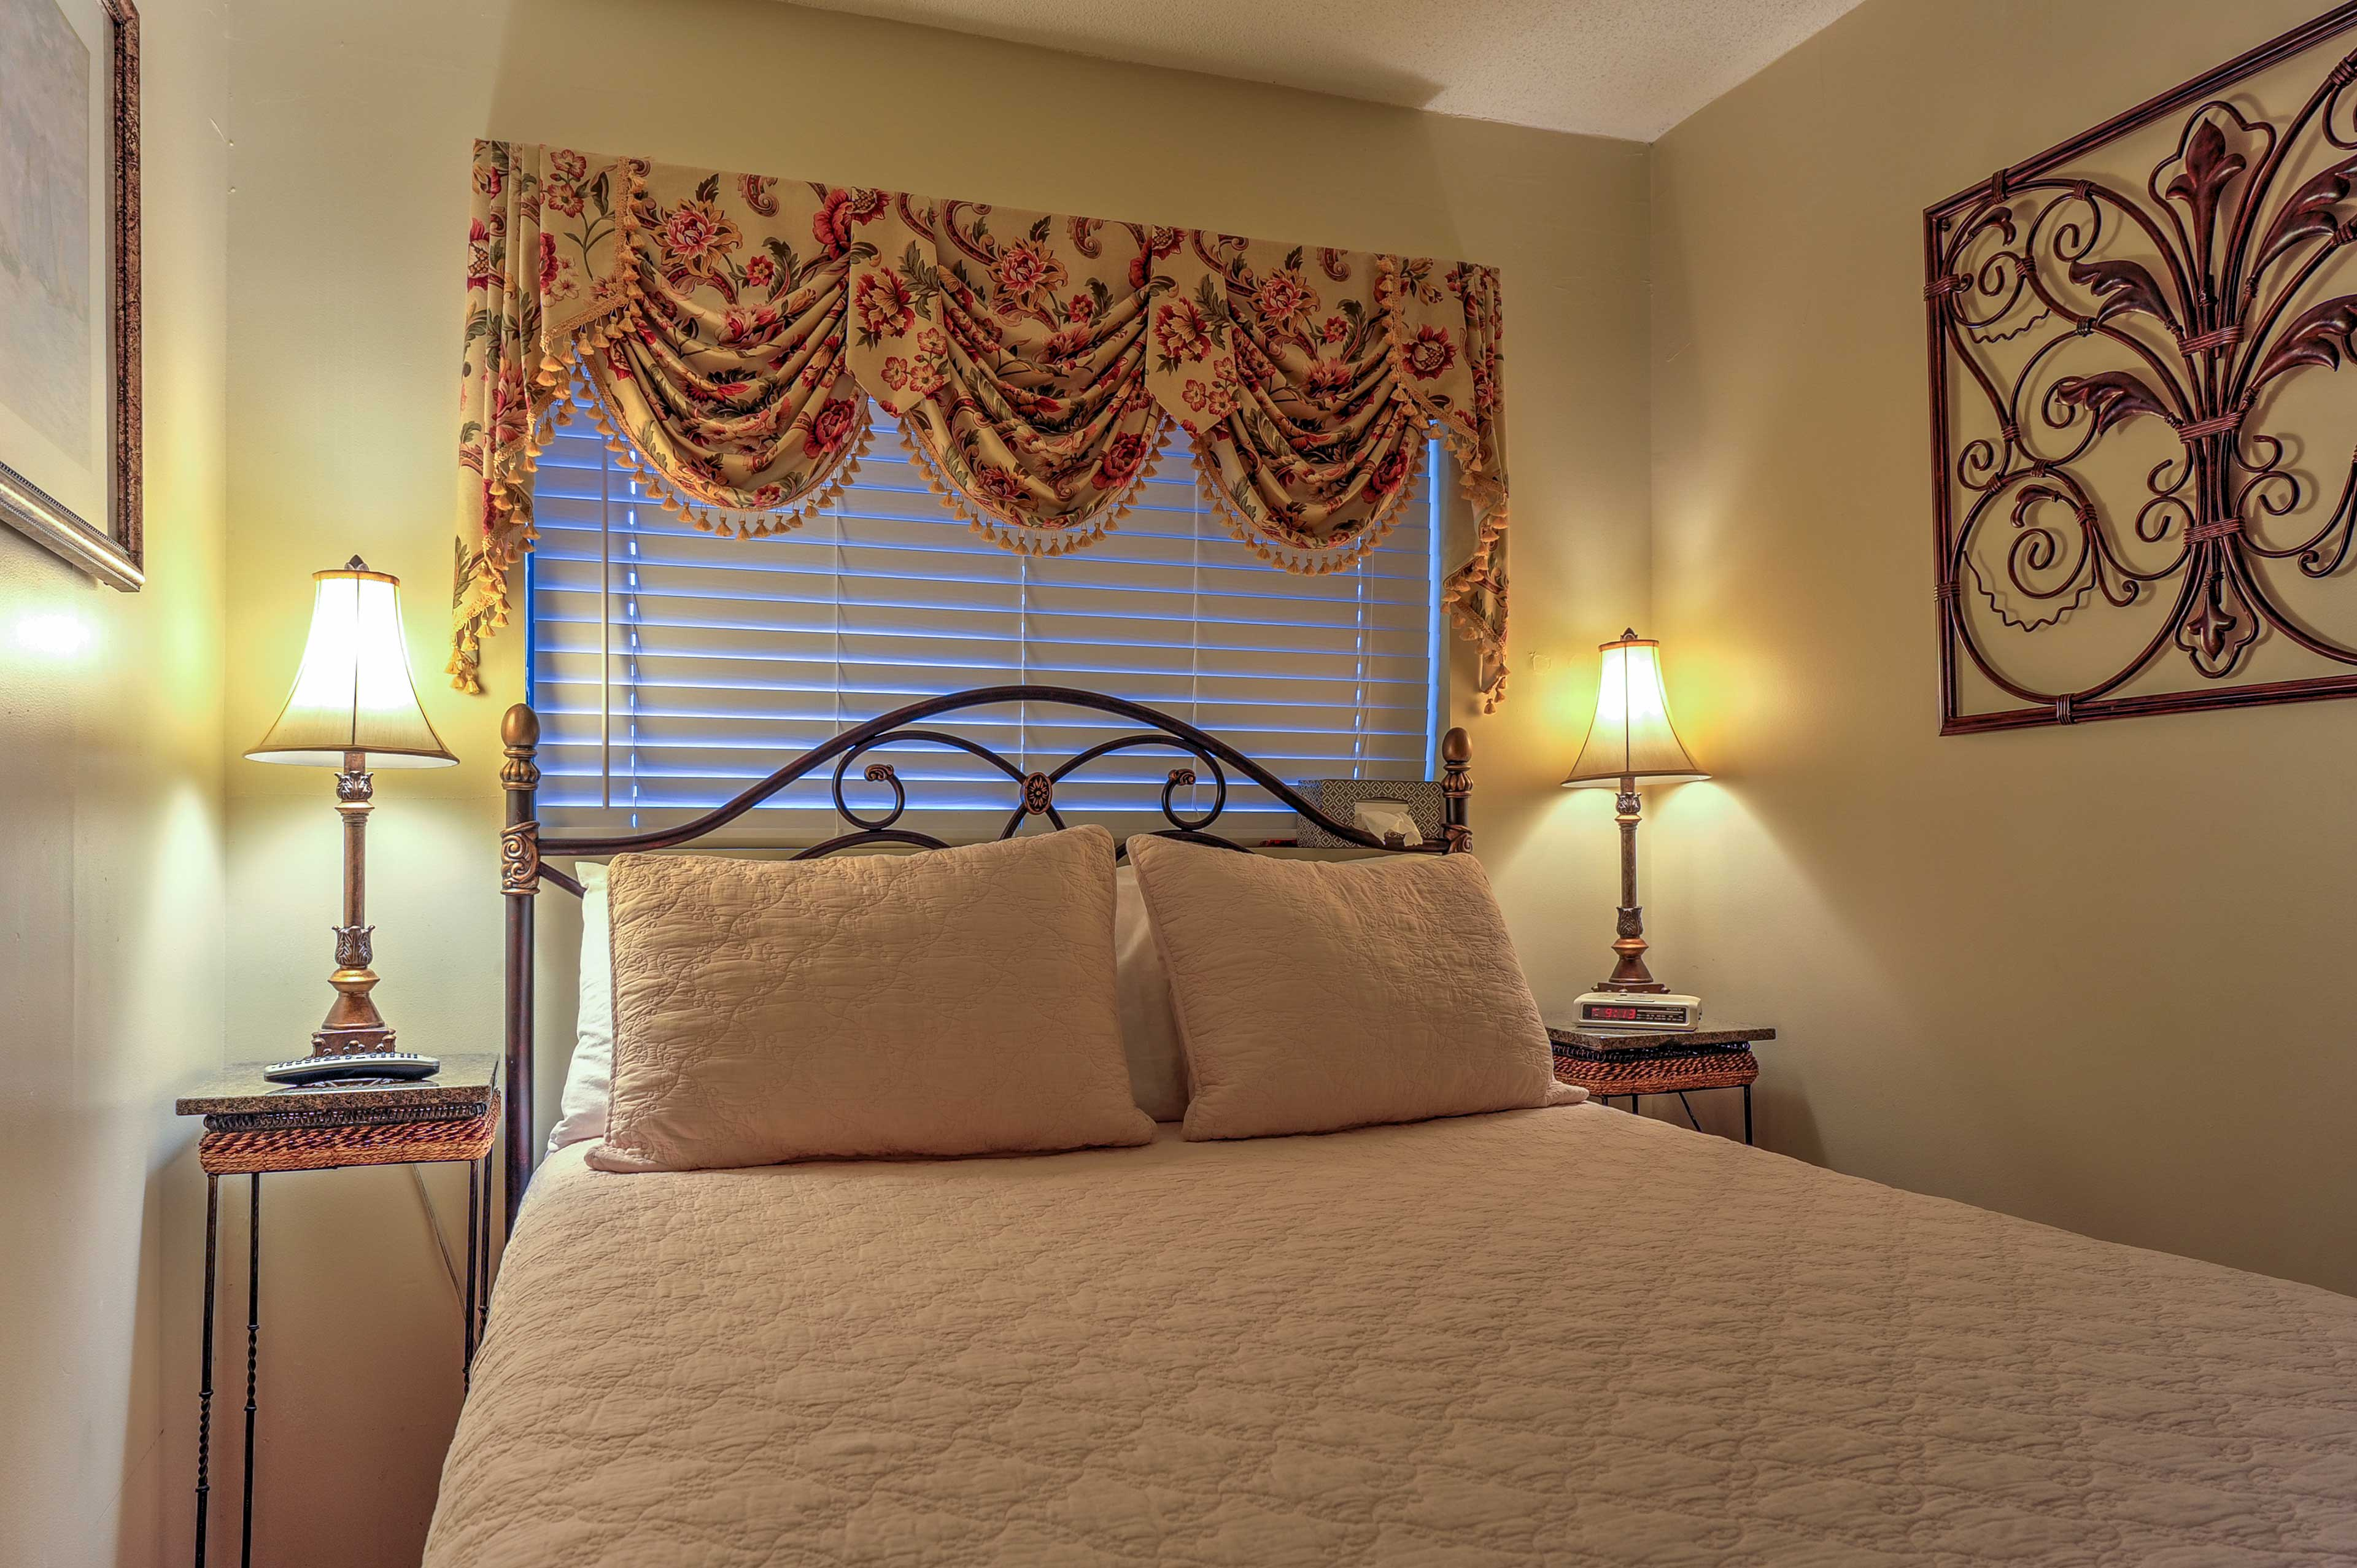 Cuddle up for the night in the bedroom's queen-sized bed.